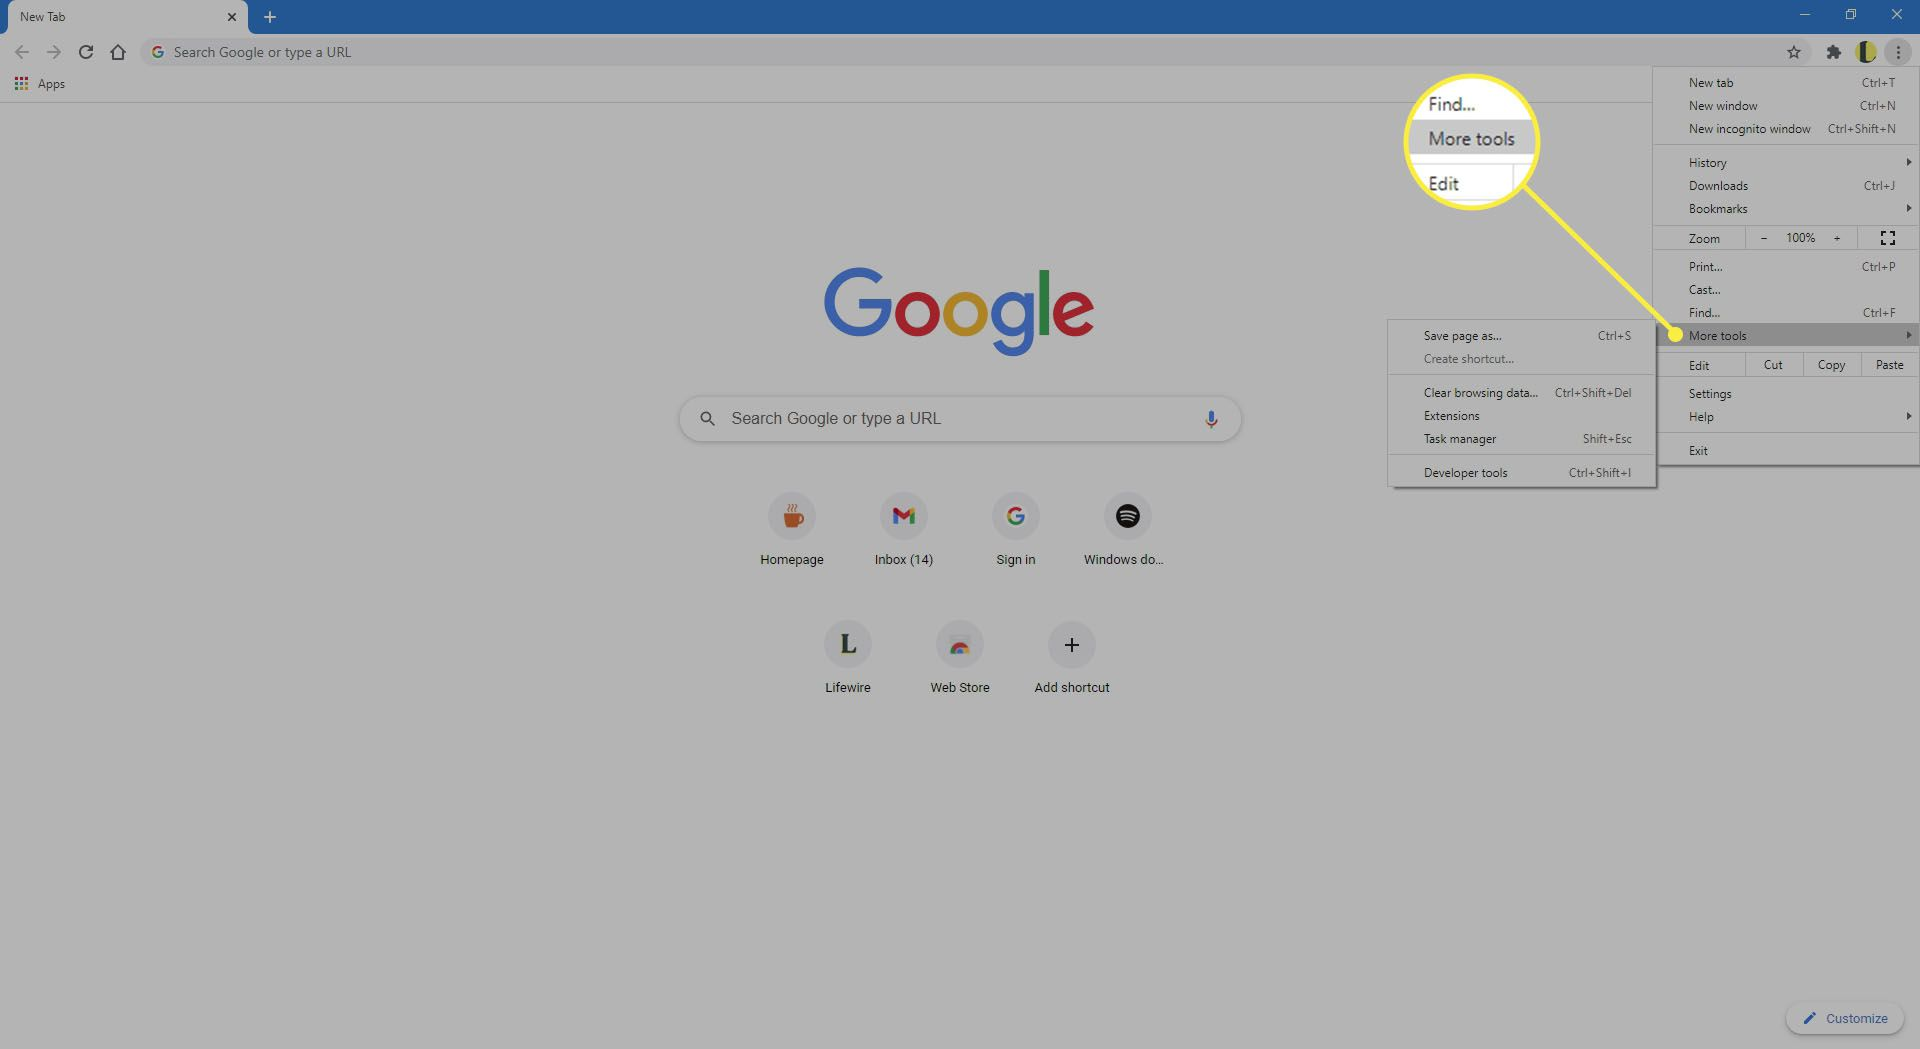 More Tools in Chrome.